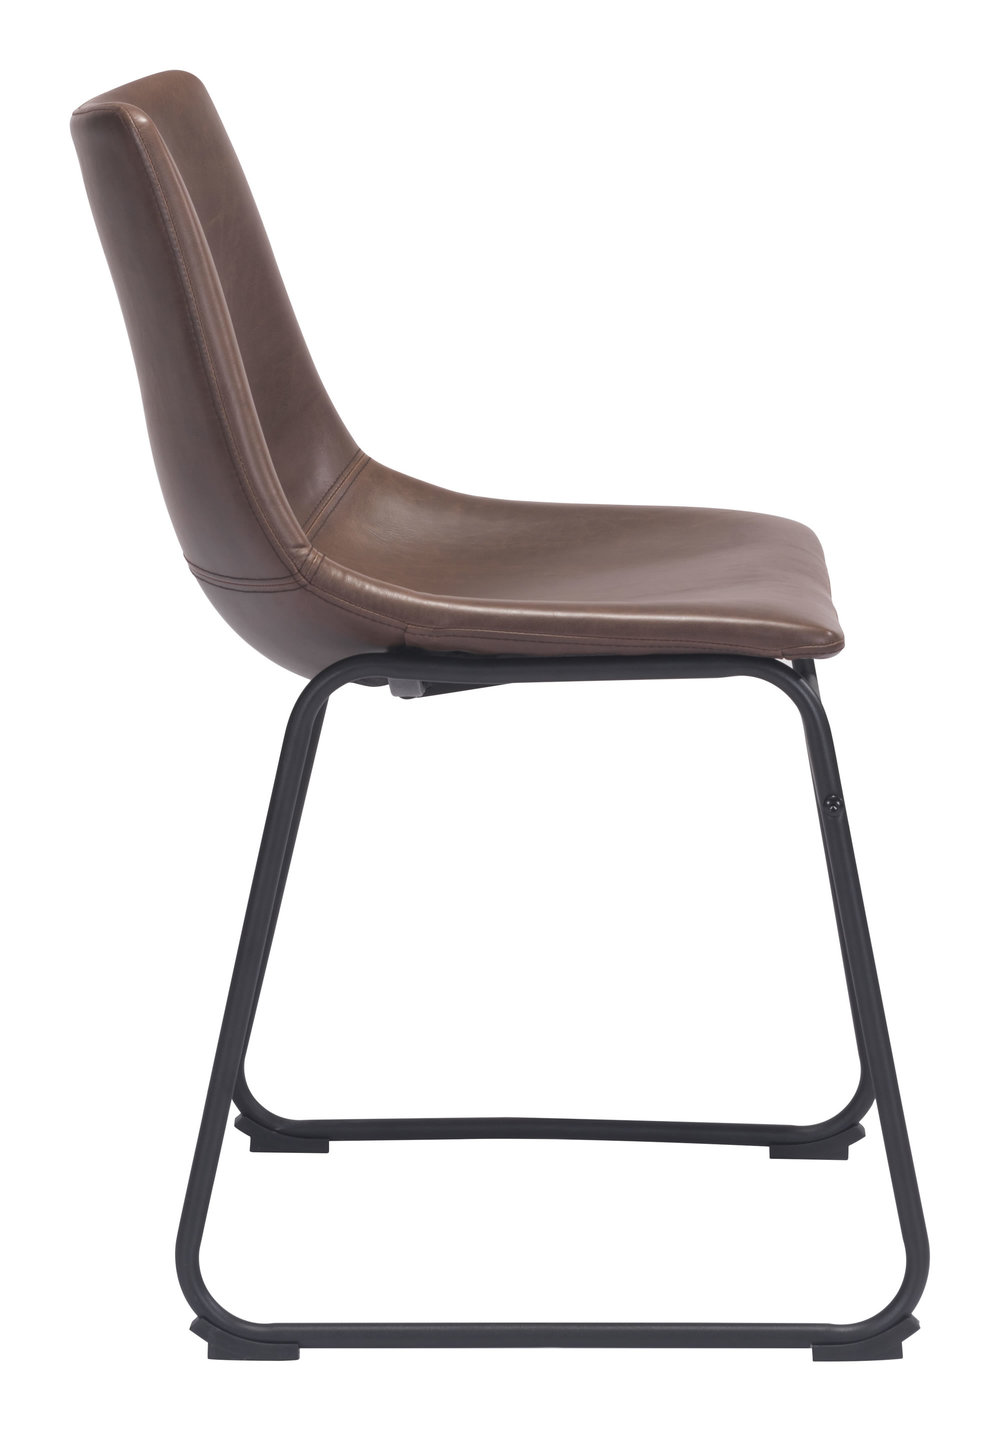 ZUO MODERN CONTEMPORARY, INC - Smart Dining Chair - Set of 2 - Vintage Espresso